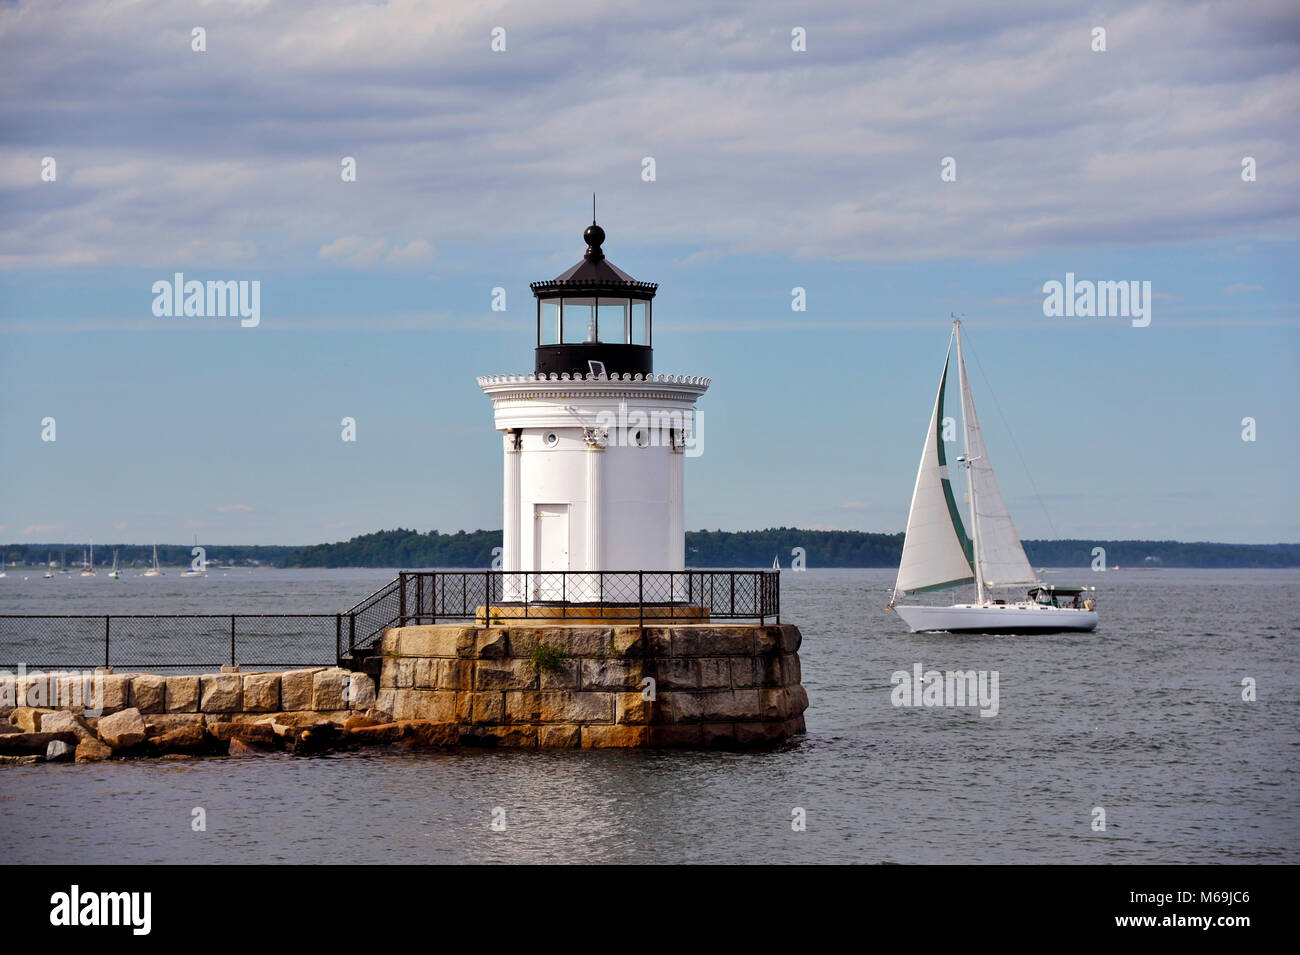 Sailing Past Portland Breakwater Lighthouse in Maine, on a warm summer day. - Stock Image